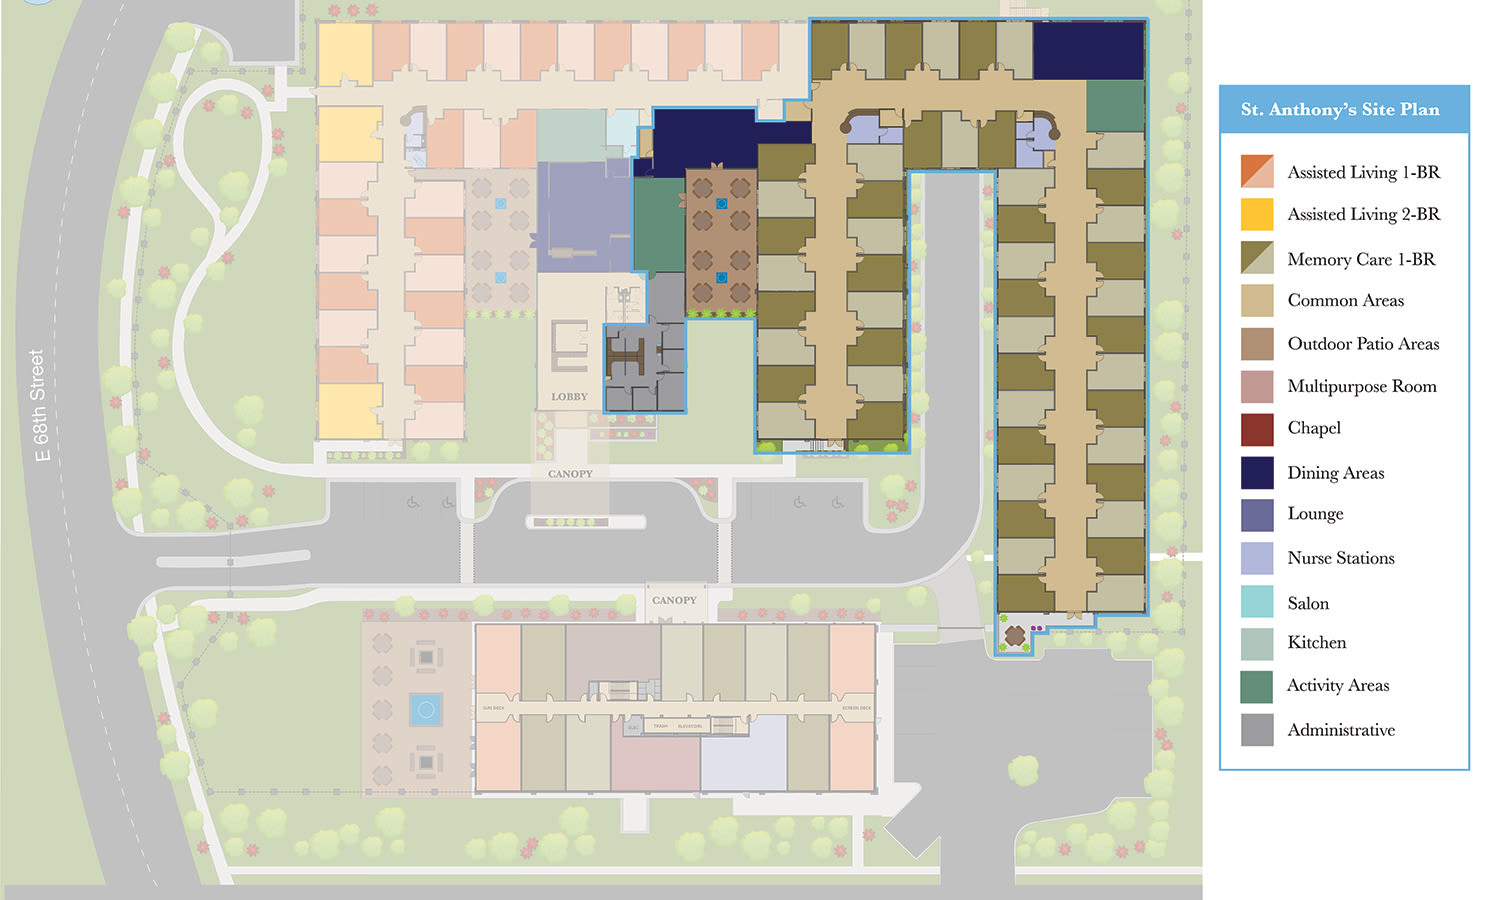 View our Memory Care site plan